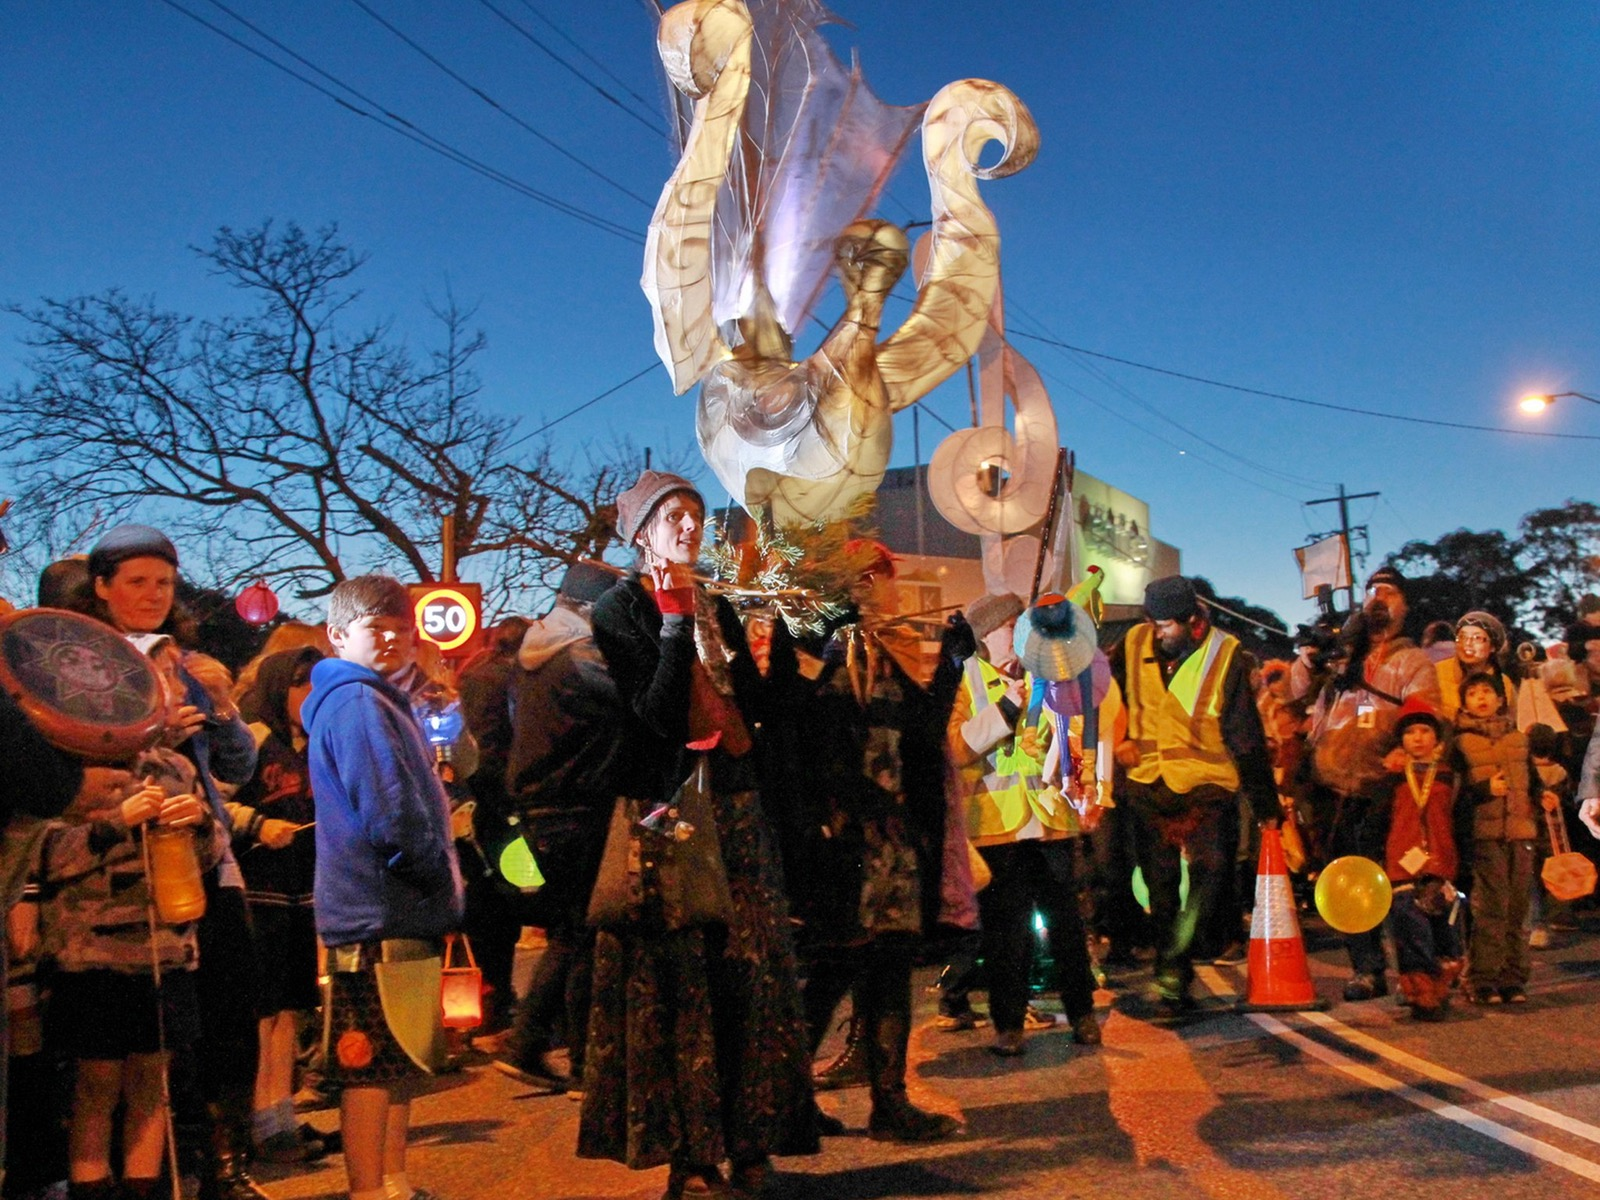 Belgrave Lantern Parade - Photographer: John Weeks